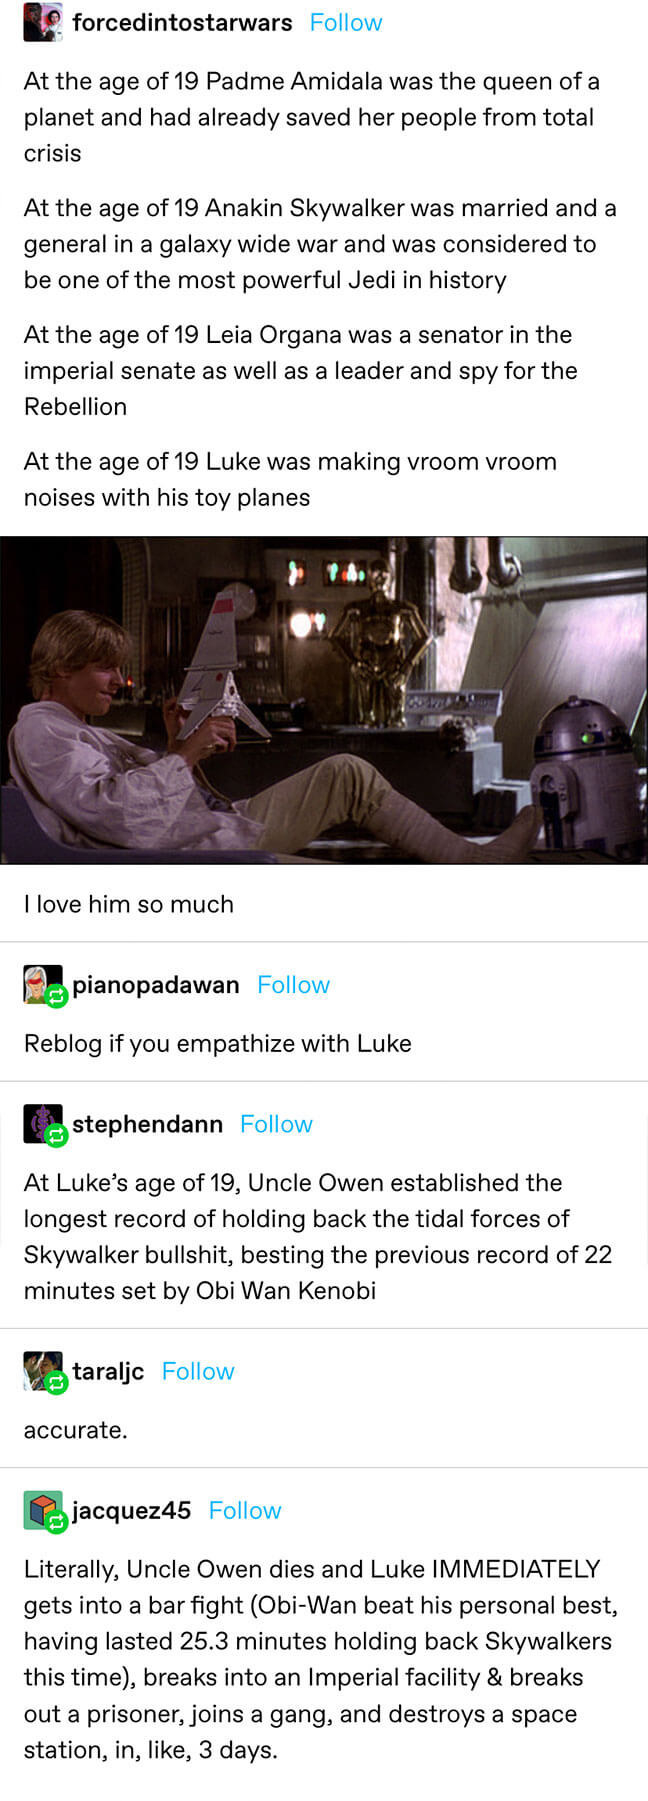 Anakin, Padme, Leia's achievements by the age of 19 are compared to Luke which are implied to be less than impressive